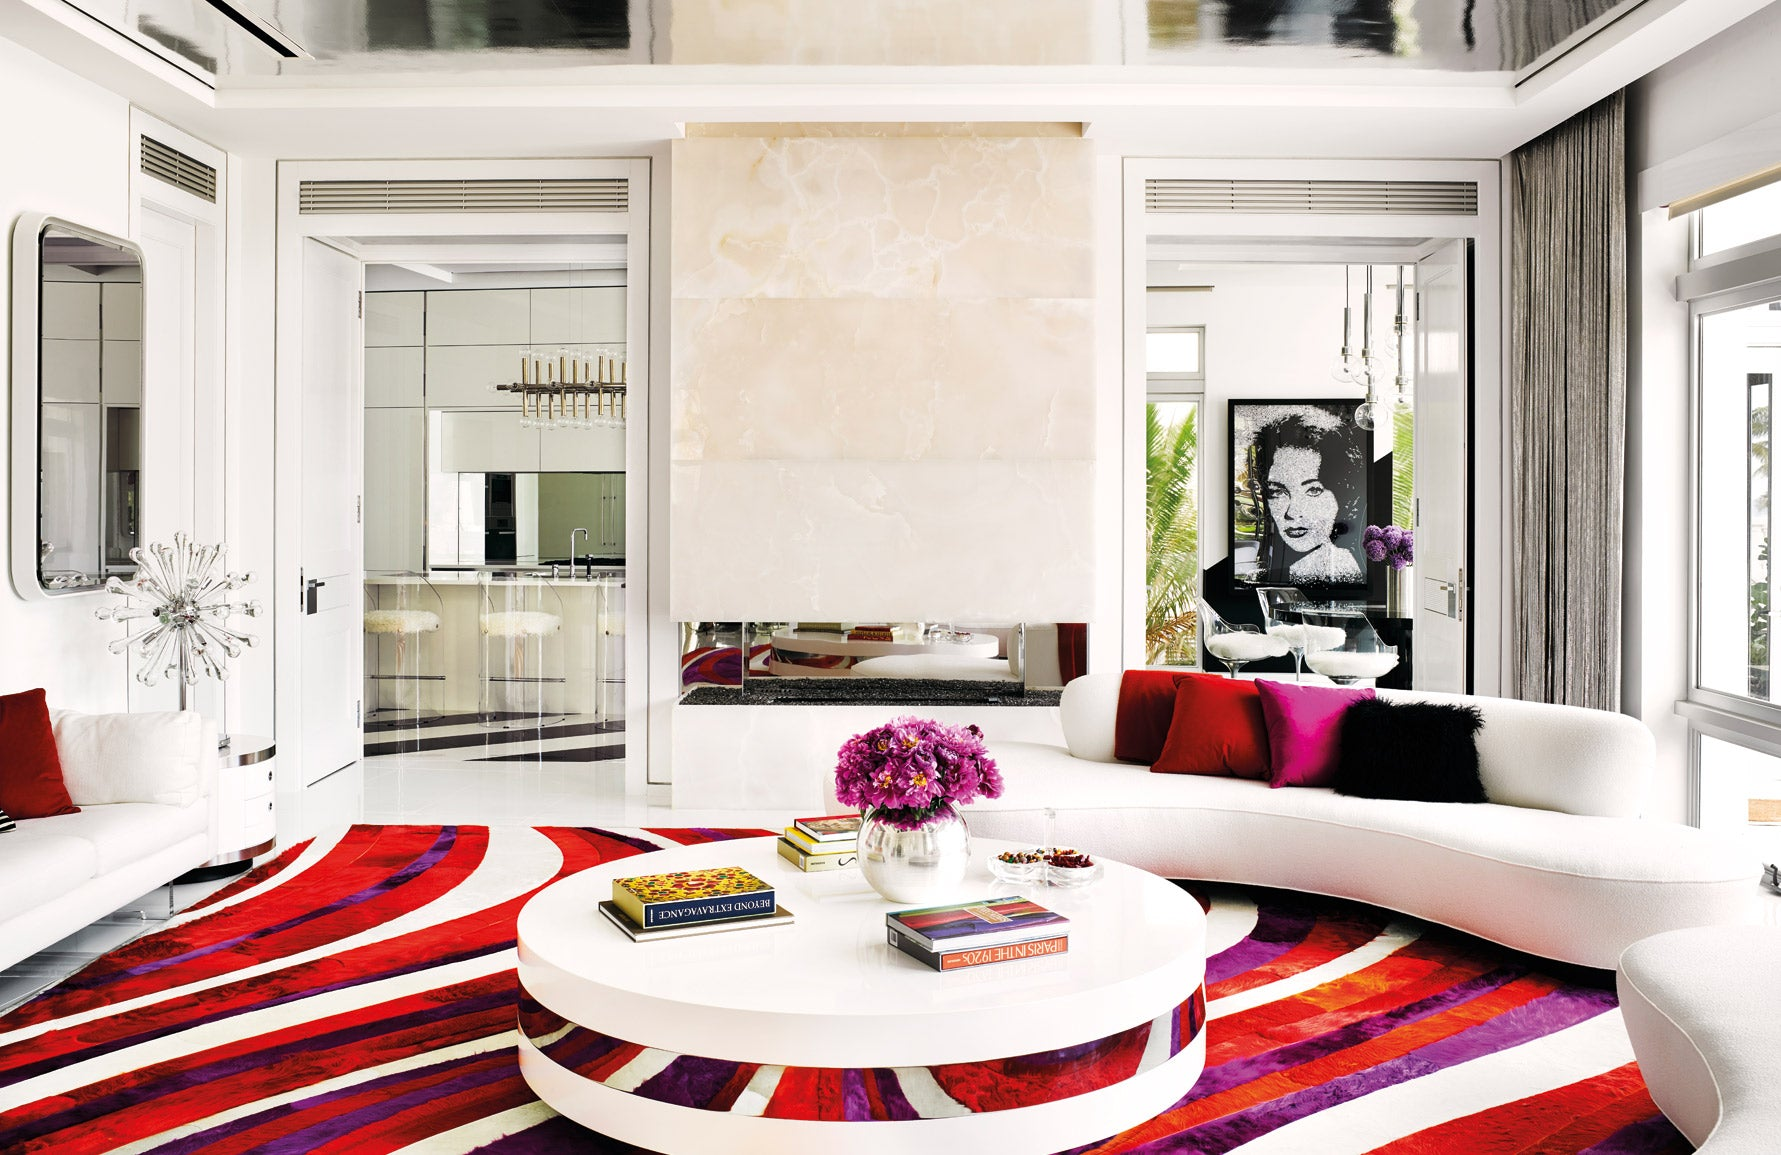 Martyn Lawrence Bullard | Celebrity interior designer | Tommy Hilfiger home | Pop Art interiors | Read more in The Luxurist at LuxDeco.com